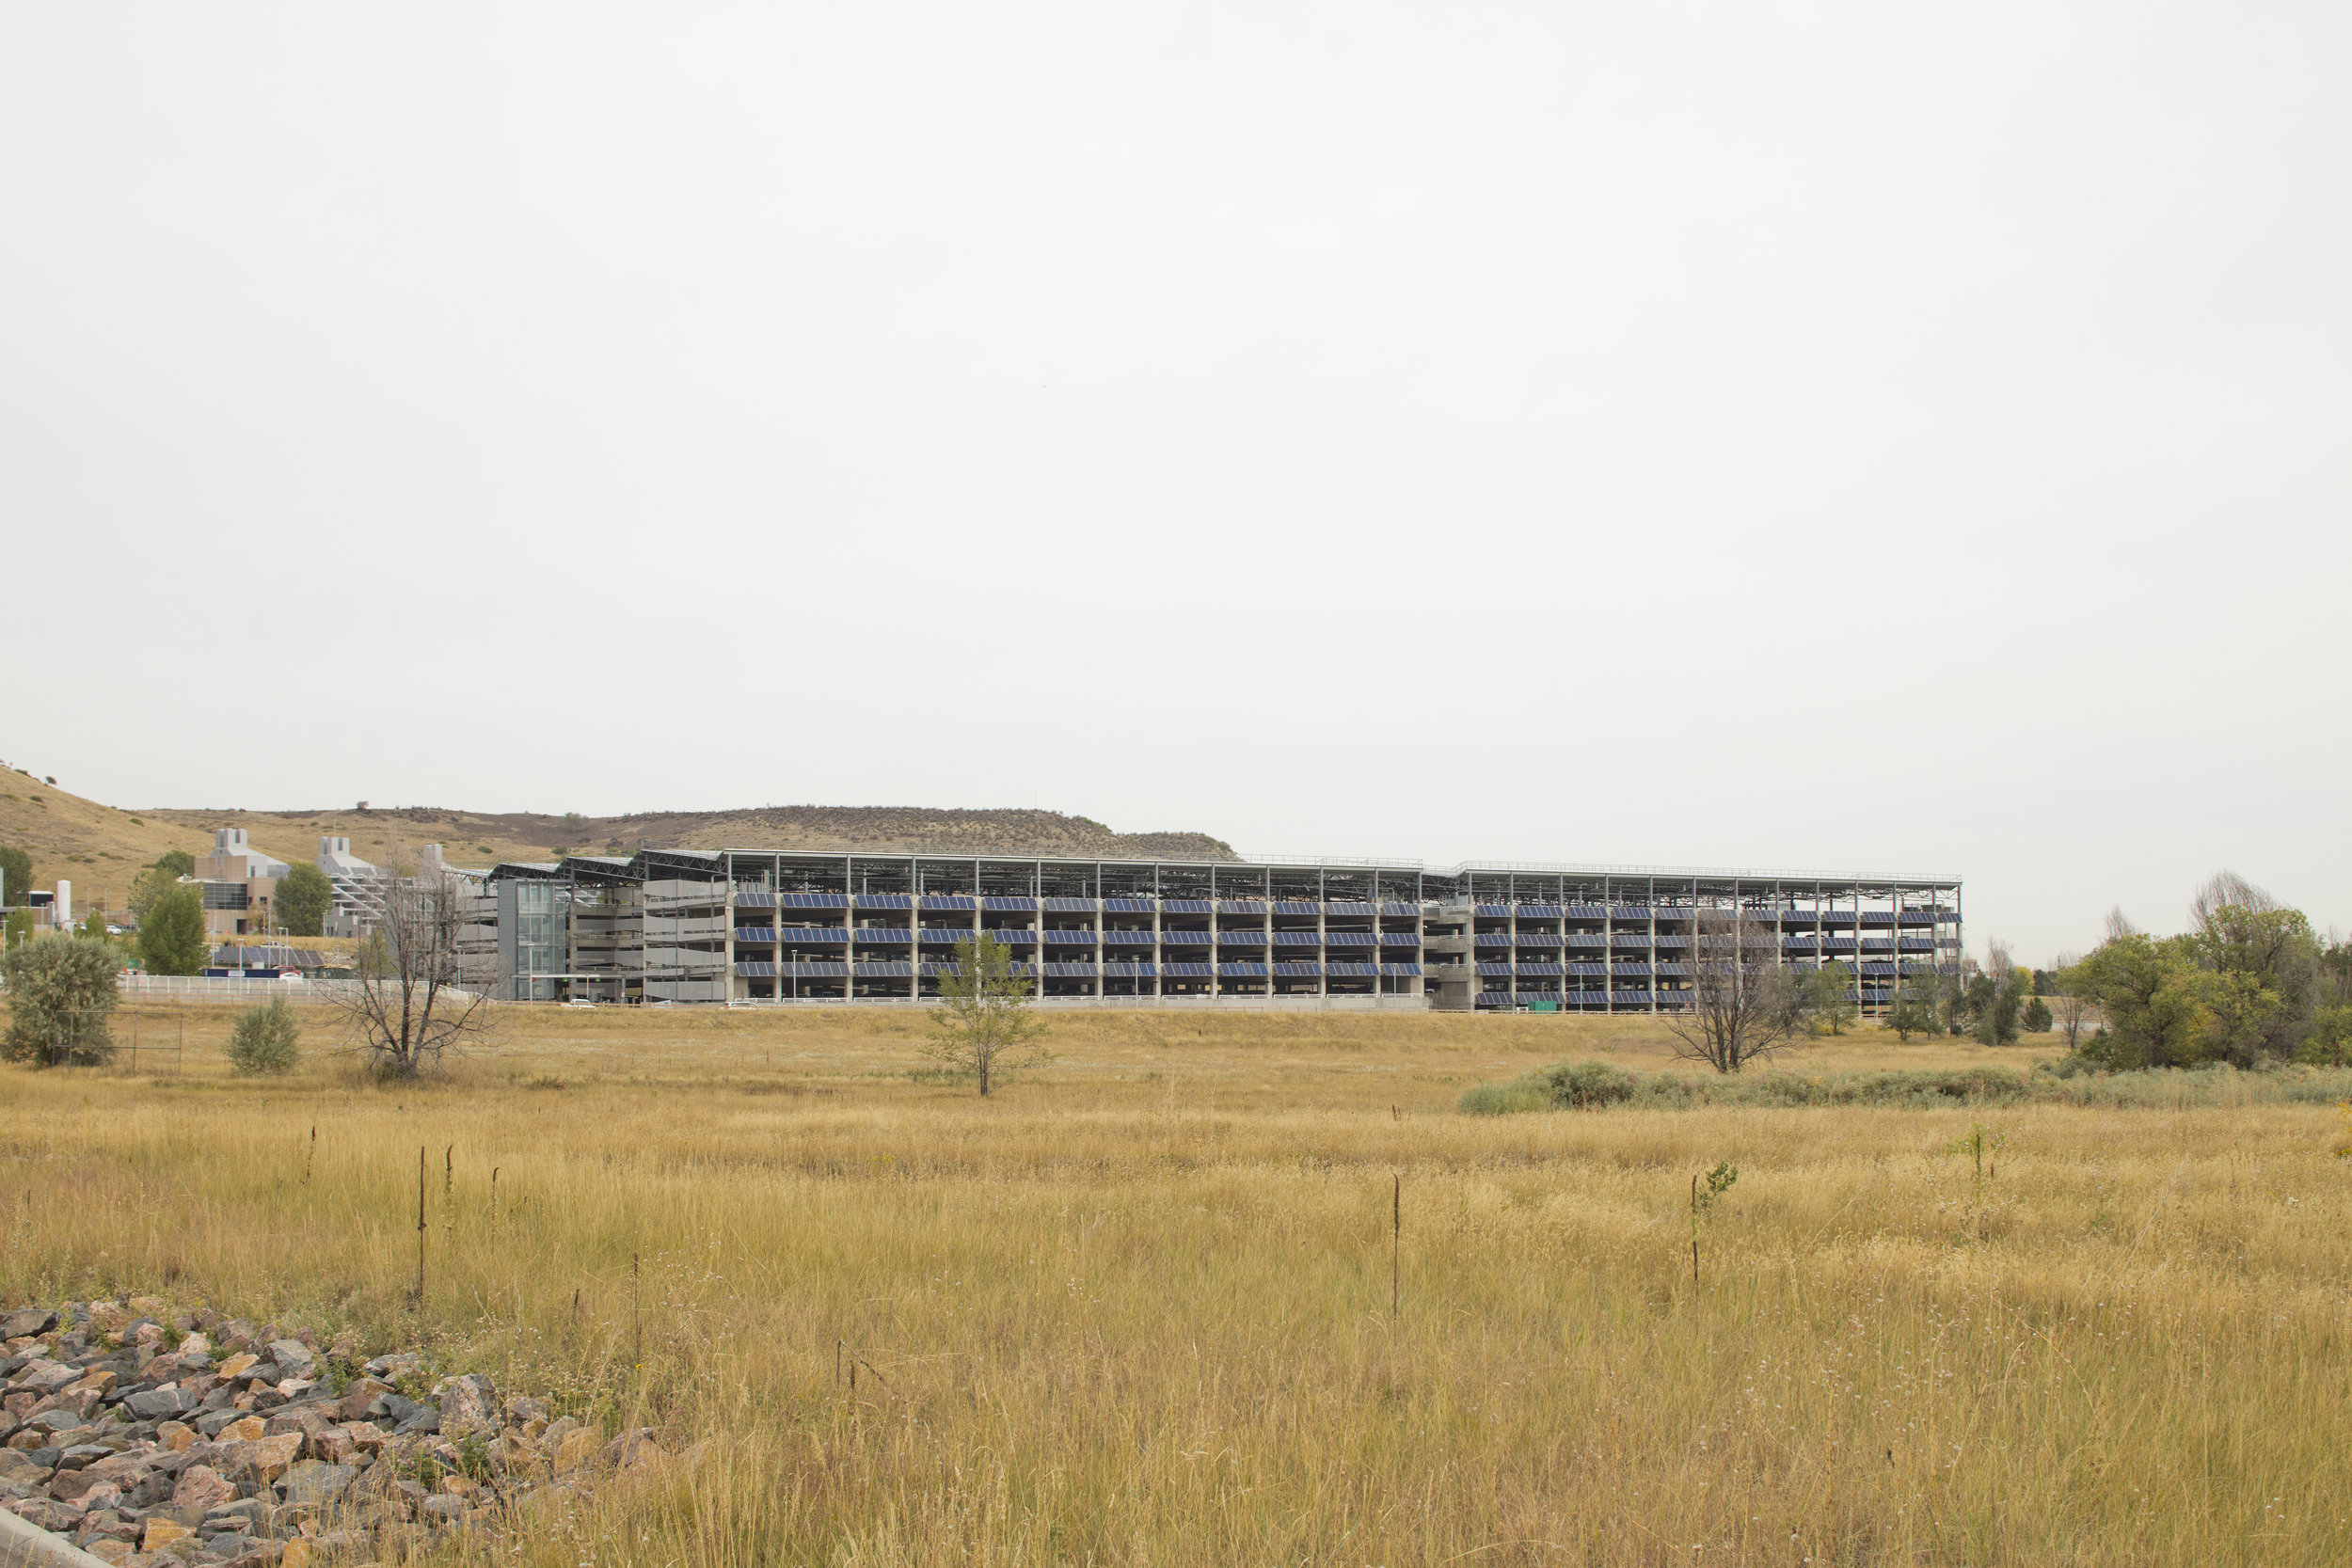 1,800 CAR PARKING GARAGE, NATIONAL RENEWABLE ENERGY RESOURCES LABORATORY